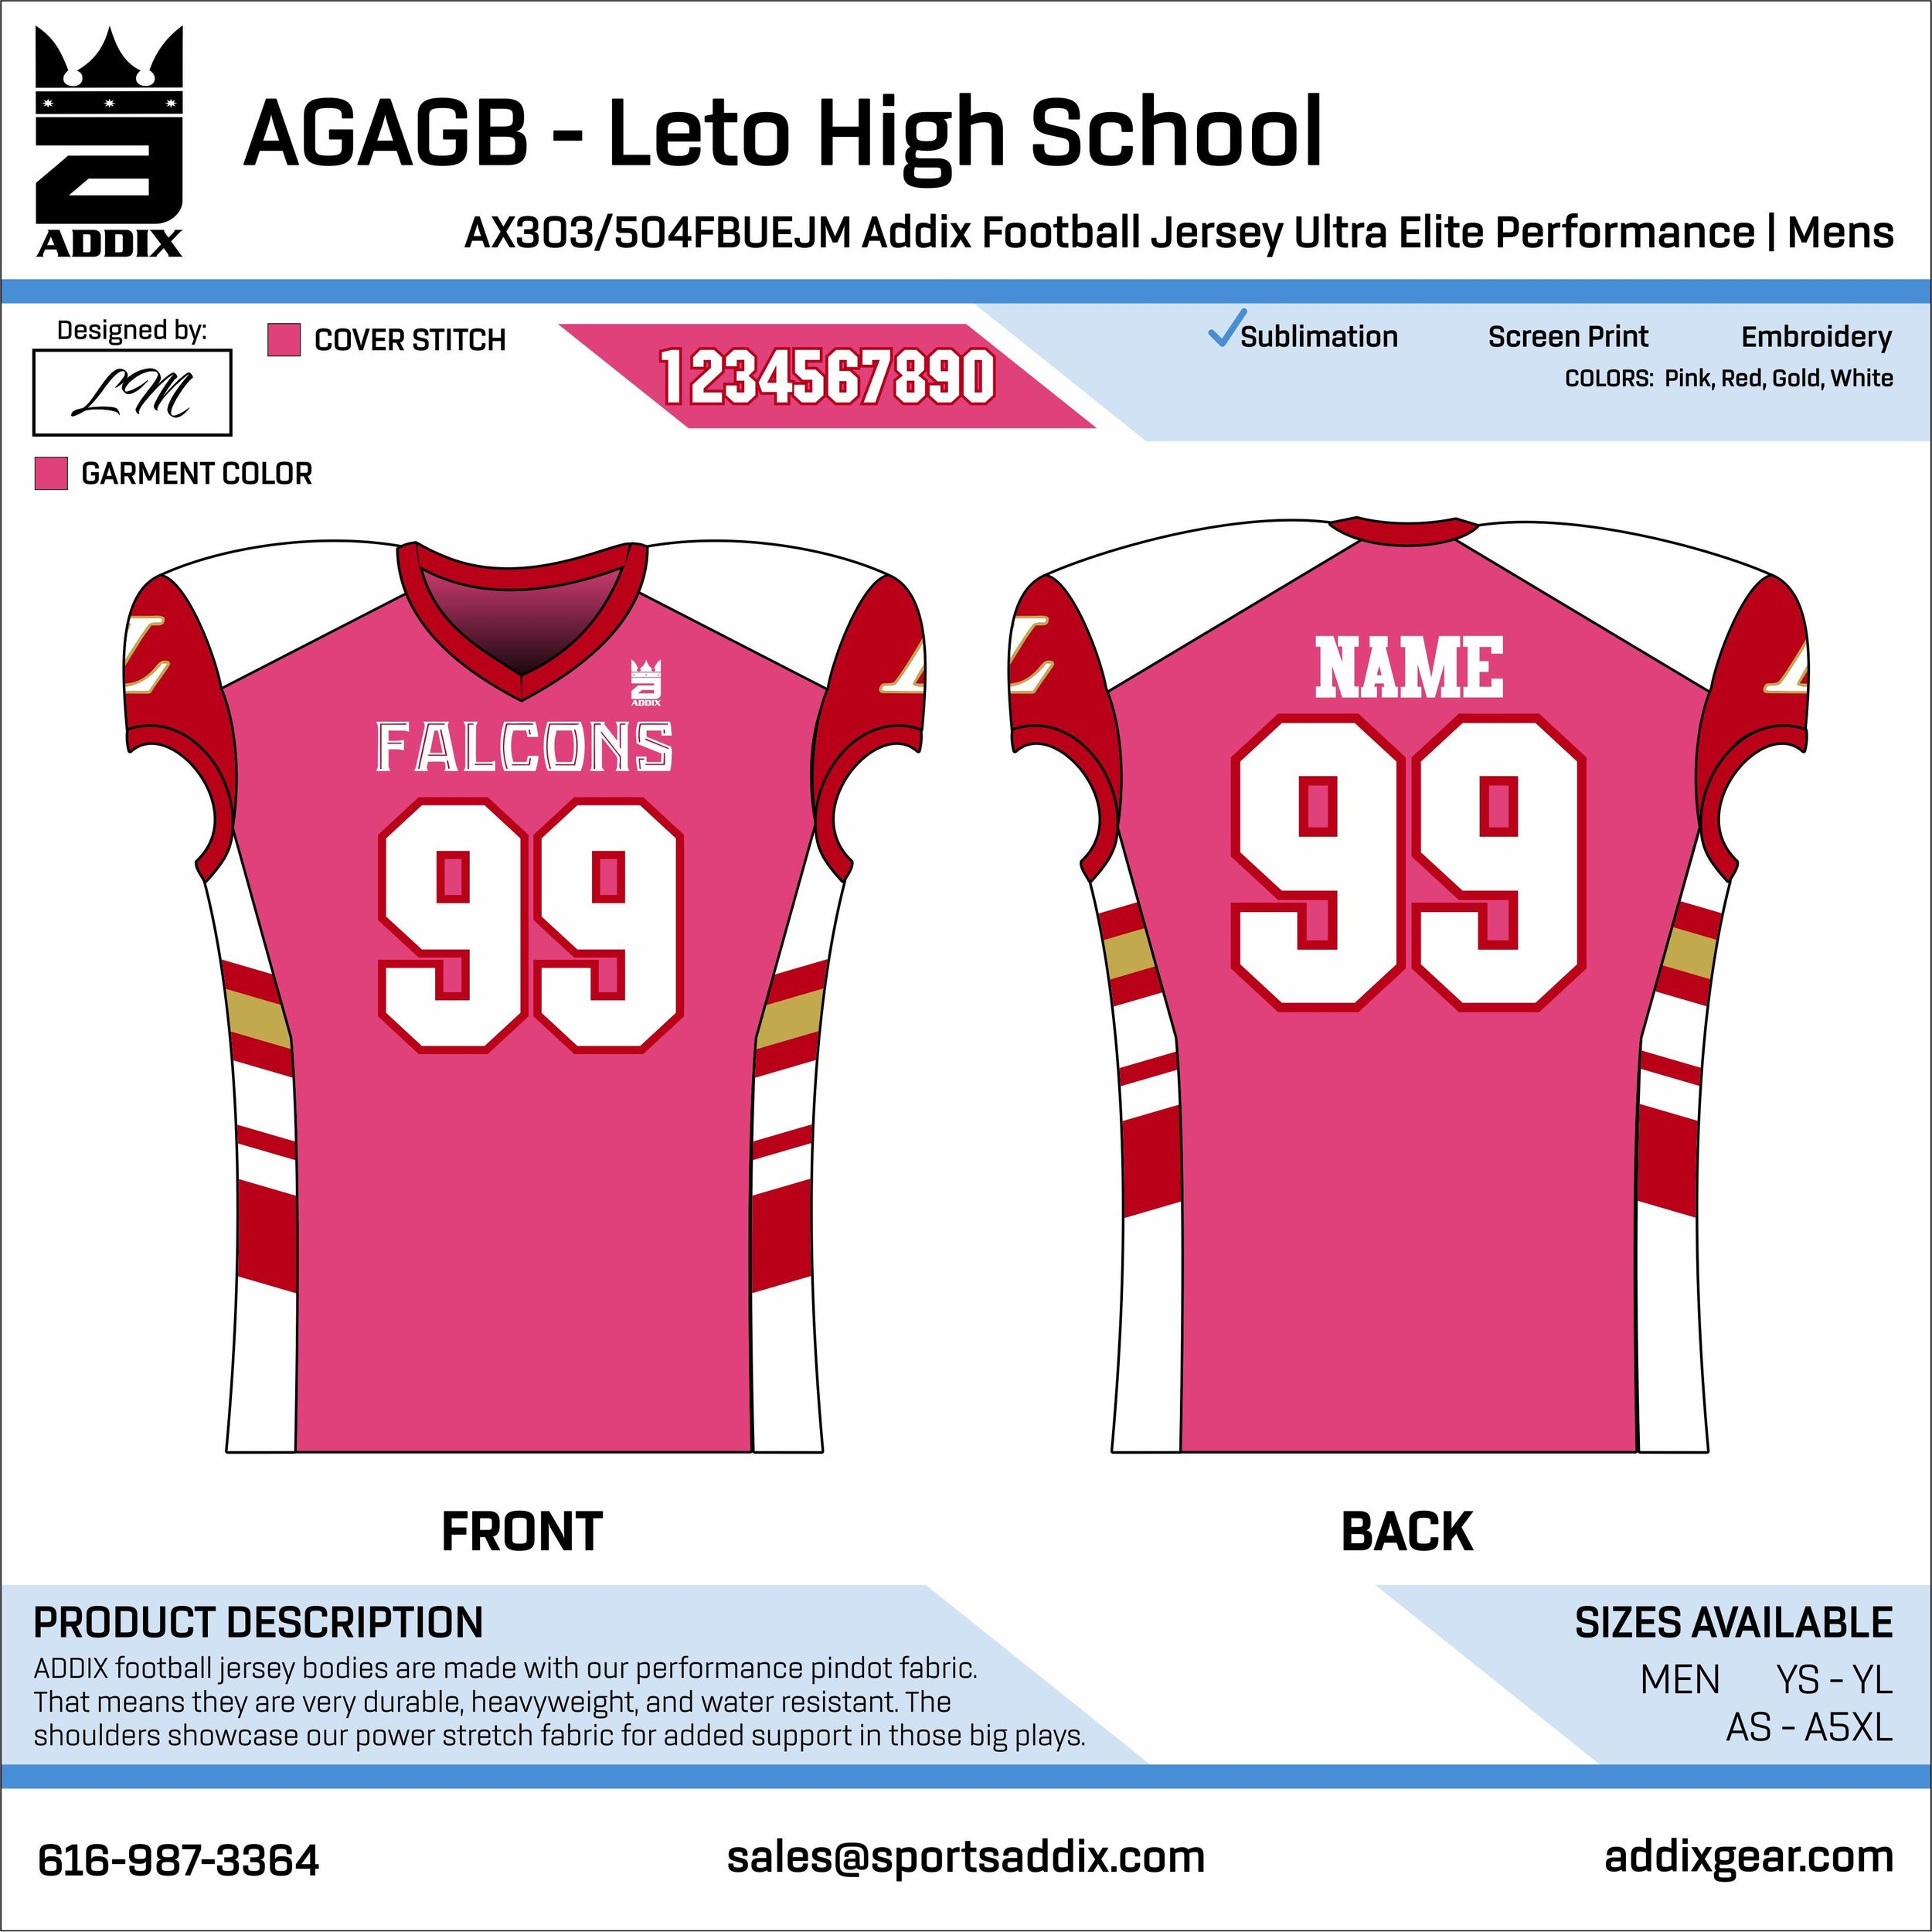 AGAGB - Leto High School_2018_6-19_LM_uep football jersey.jpg